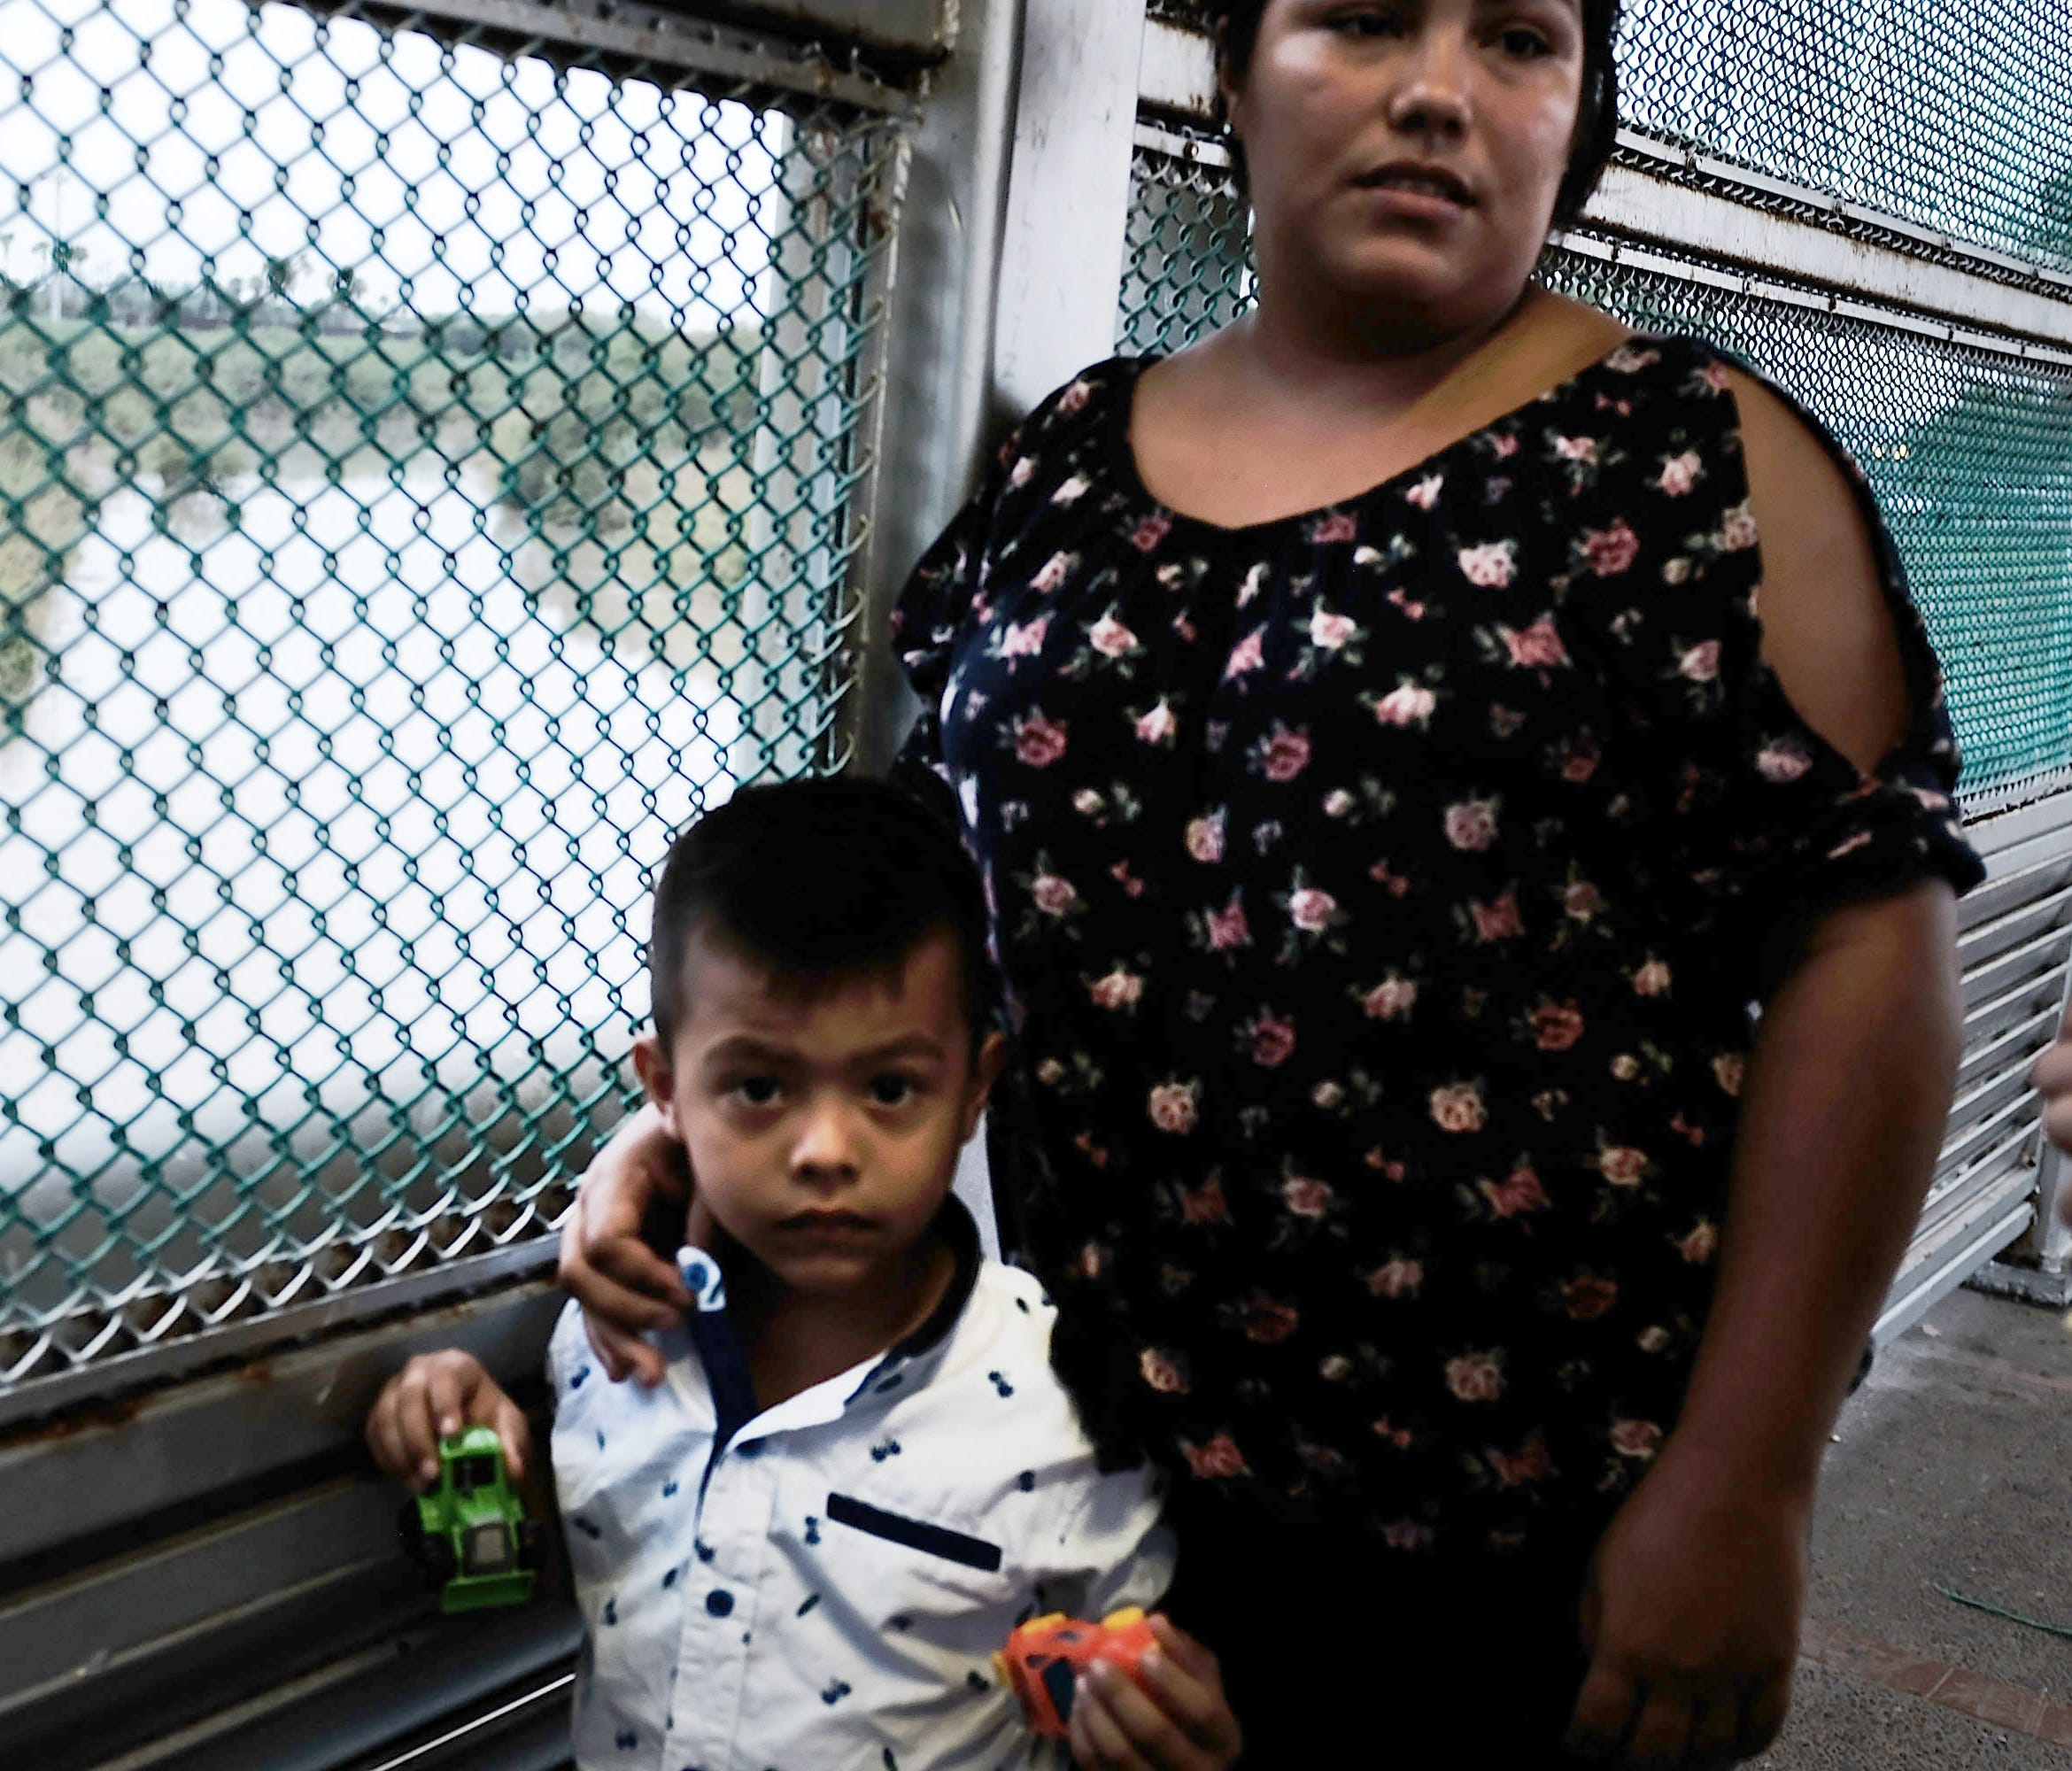 A Mexican woman and her child are held up by the border patrol as they try to enter into Brownsville on June 21, 2018 in Brownsville, Texas.